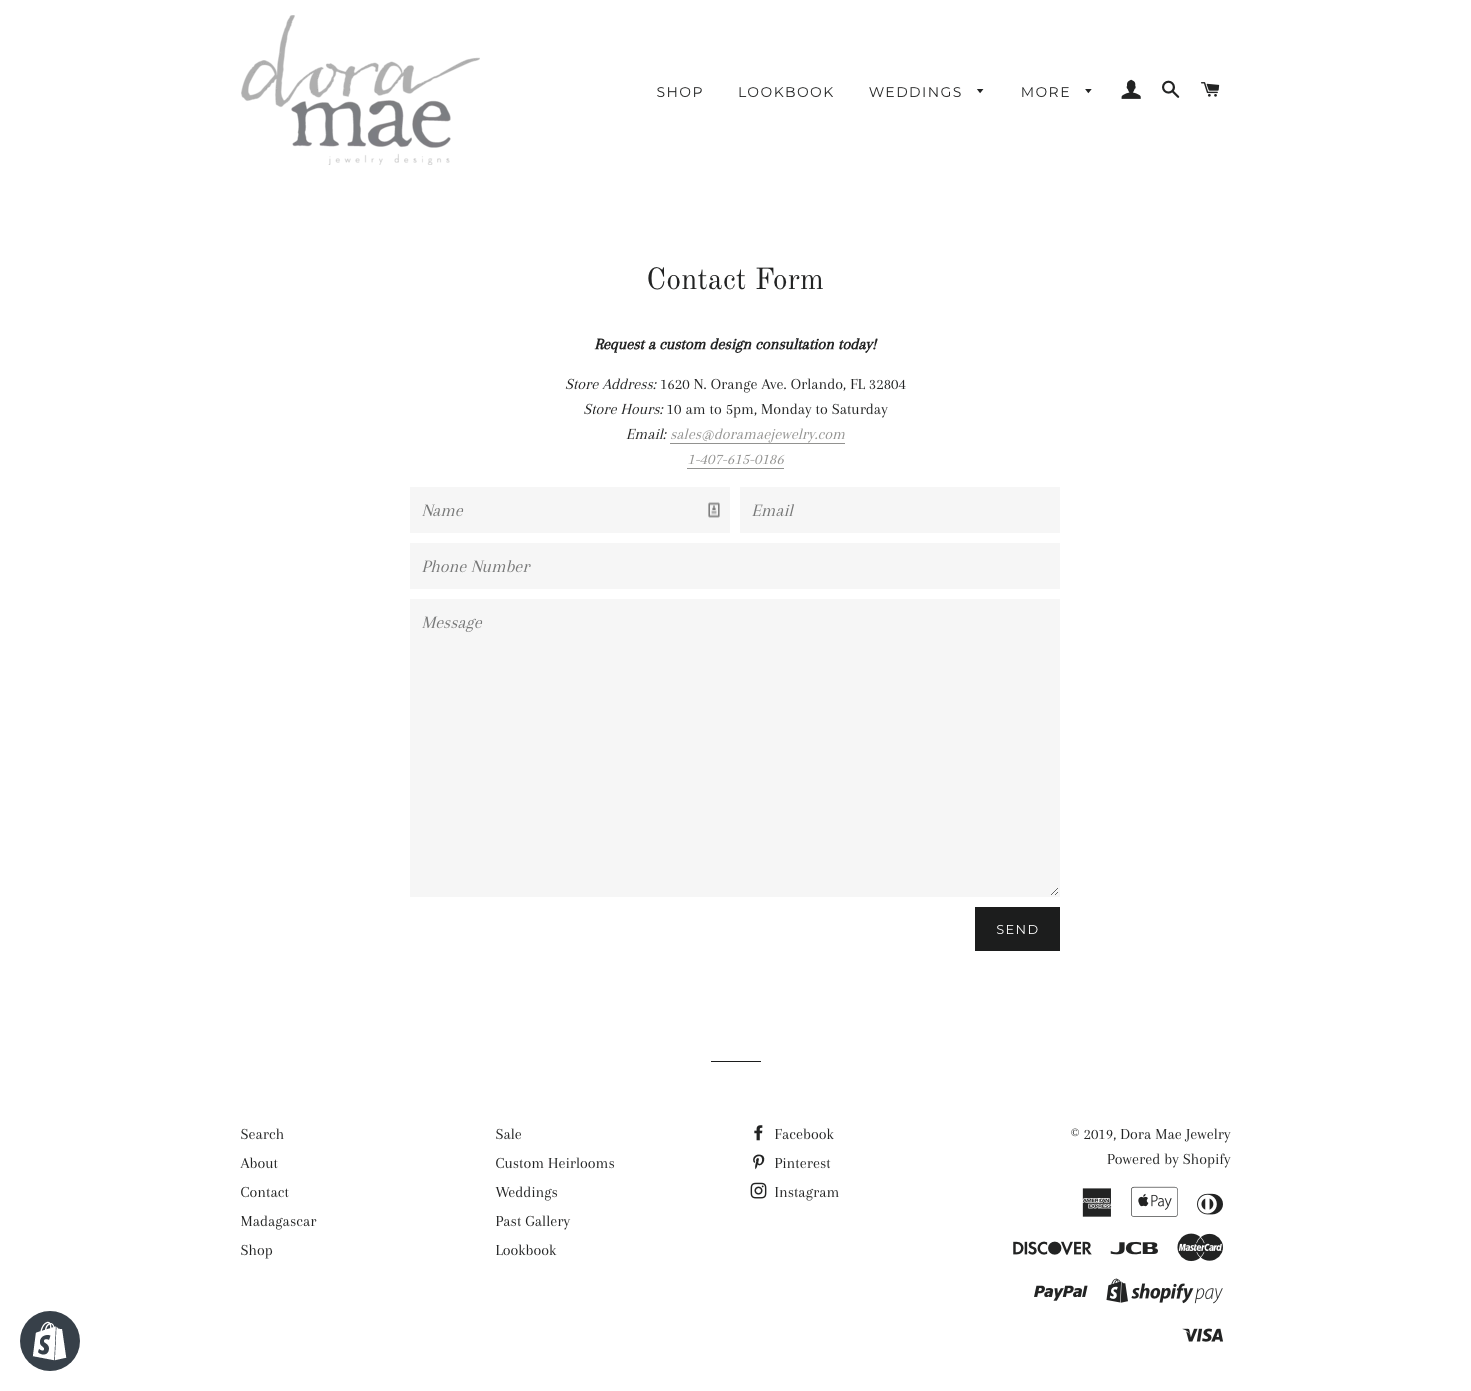 dora mae old shopify site contact page screenshot